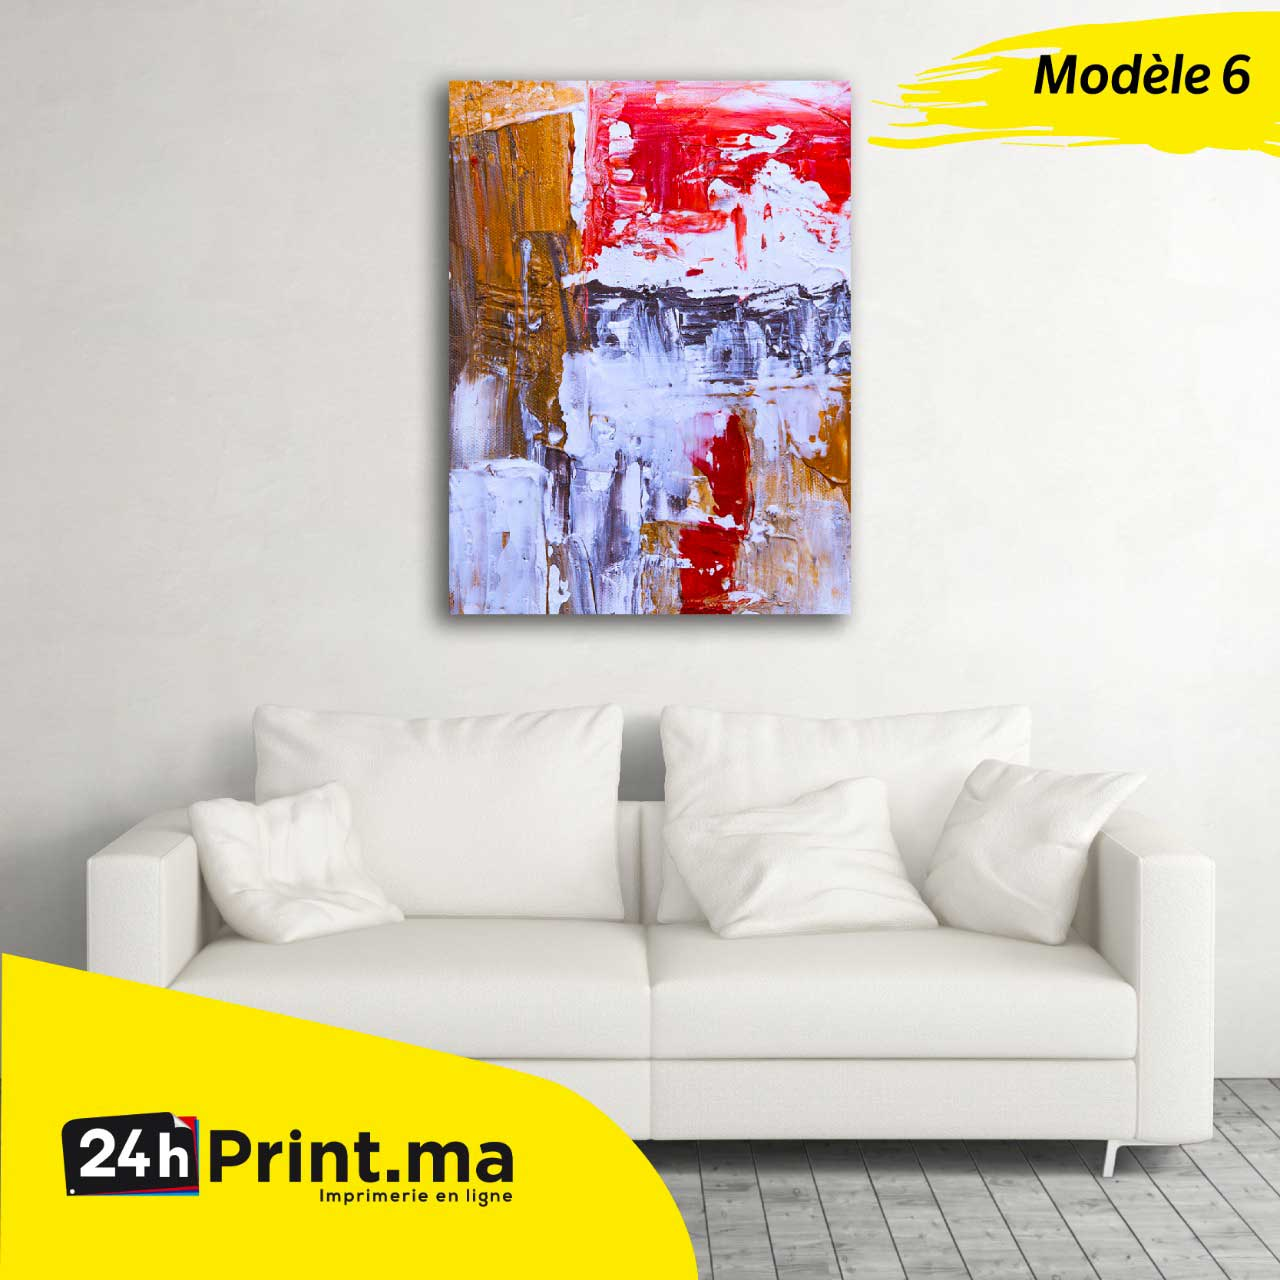 https://www.24hprint.ma/images/products_gallery_images/697.jpg